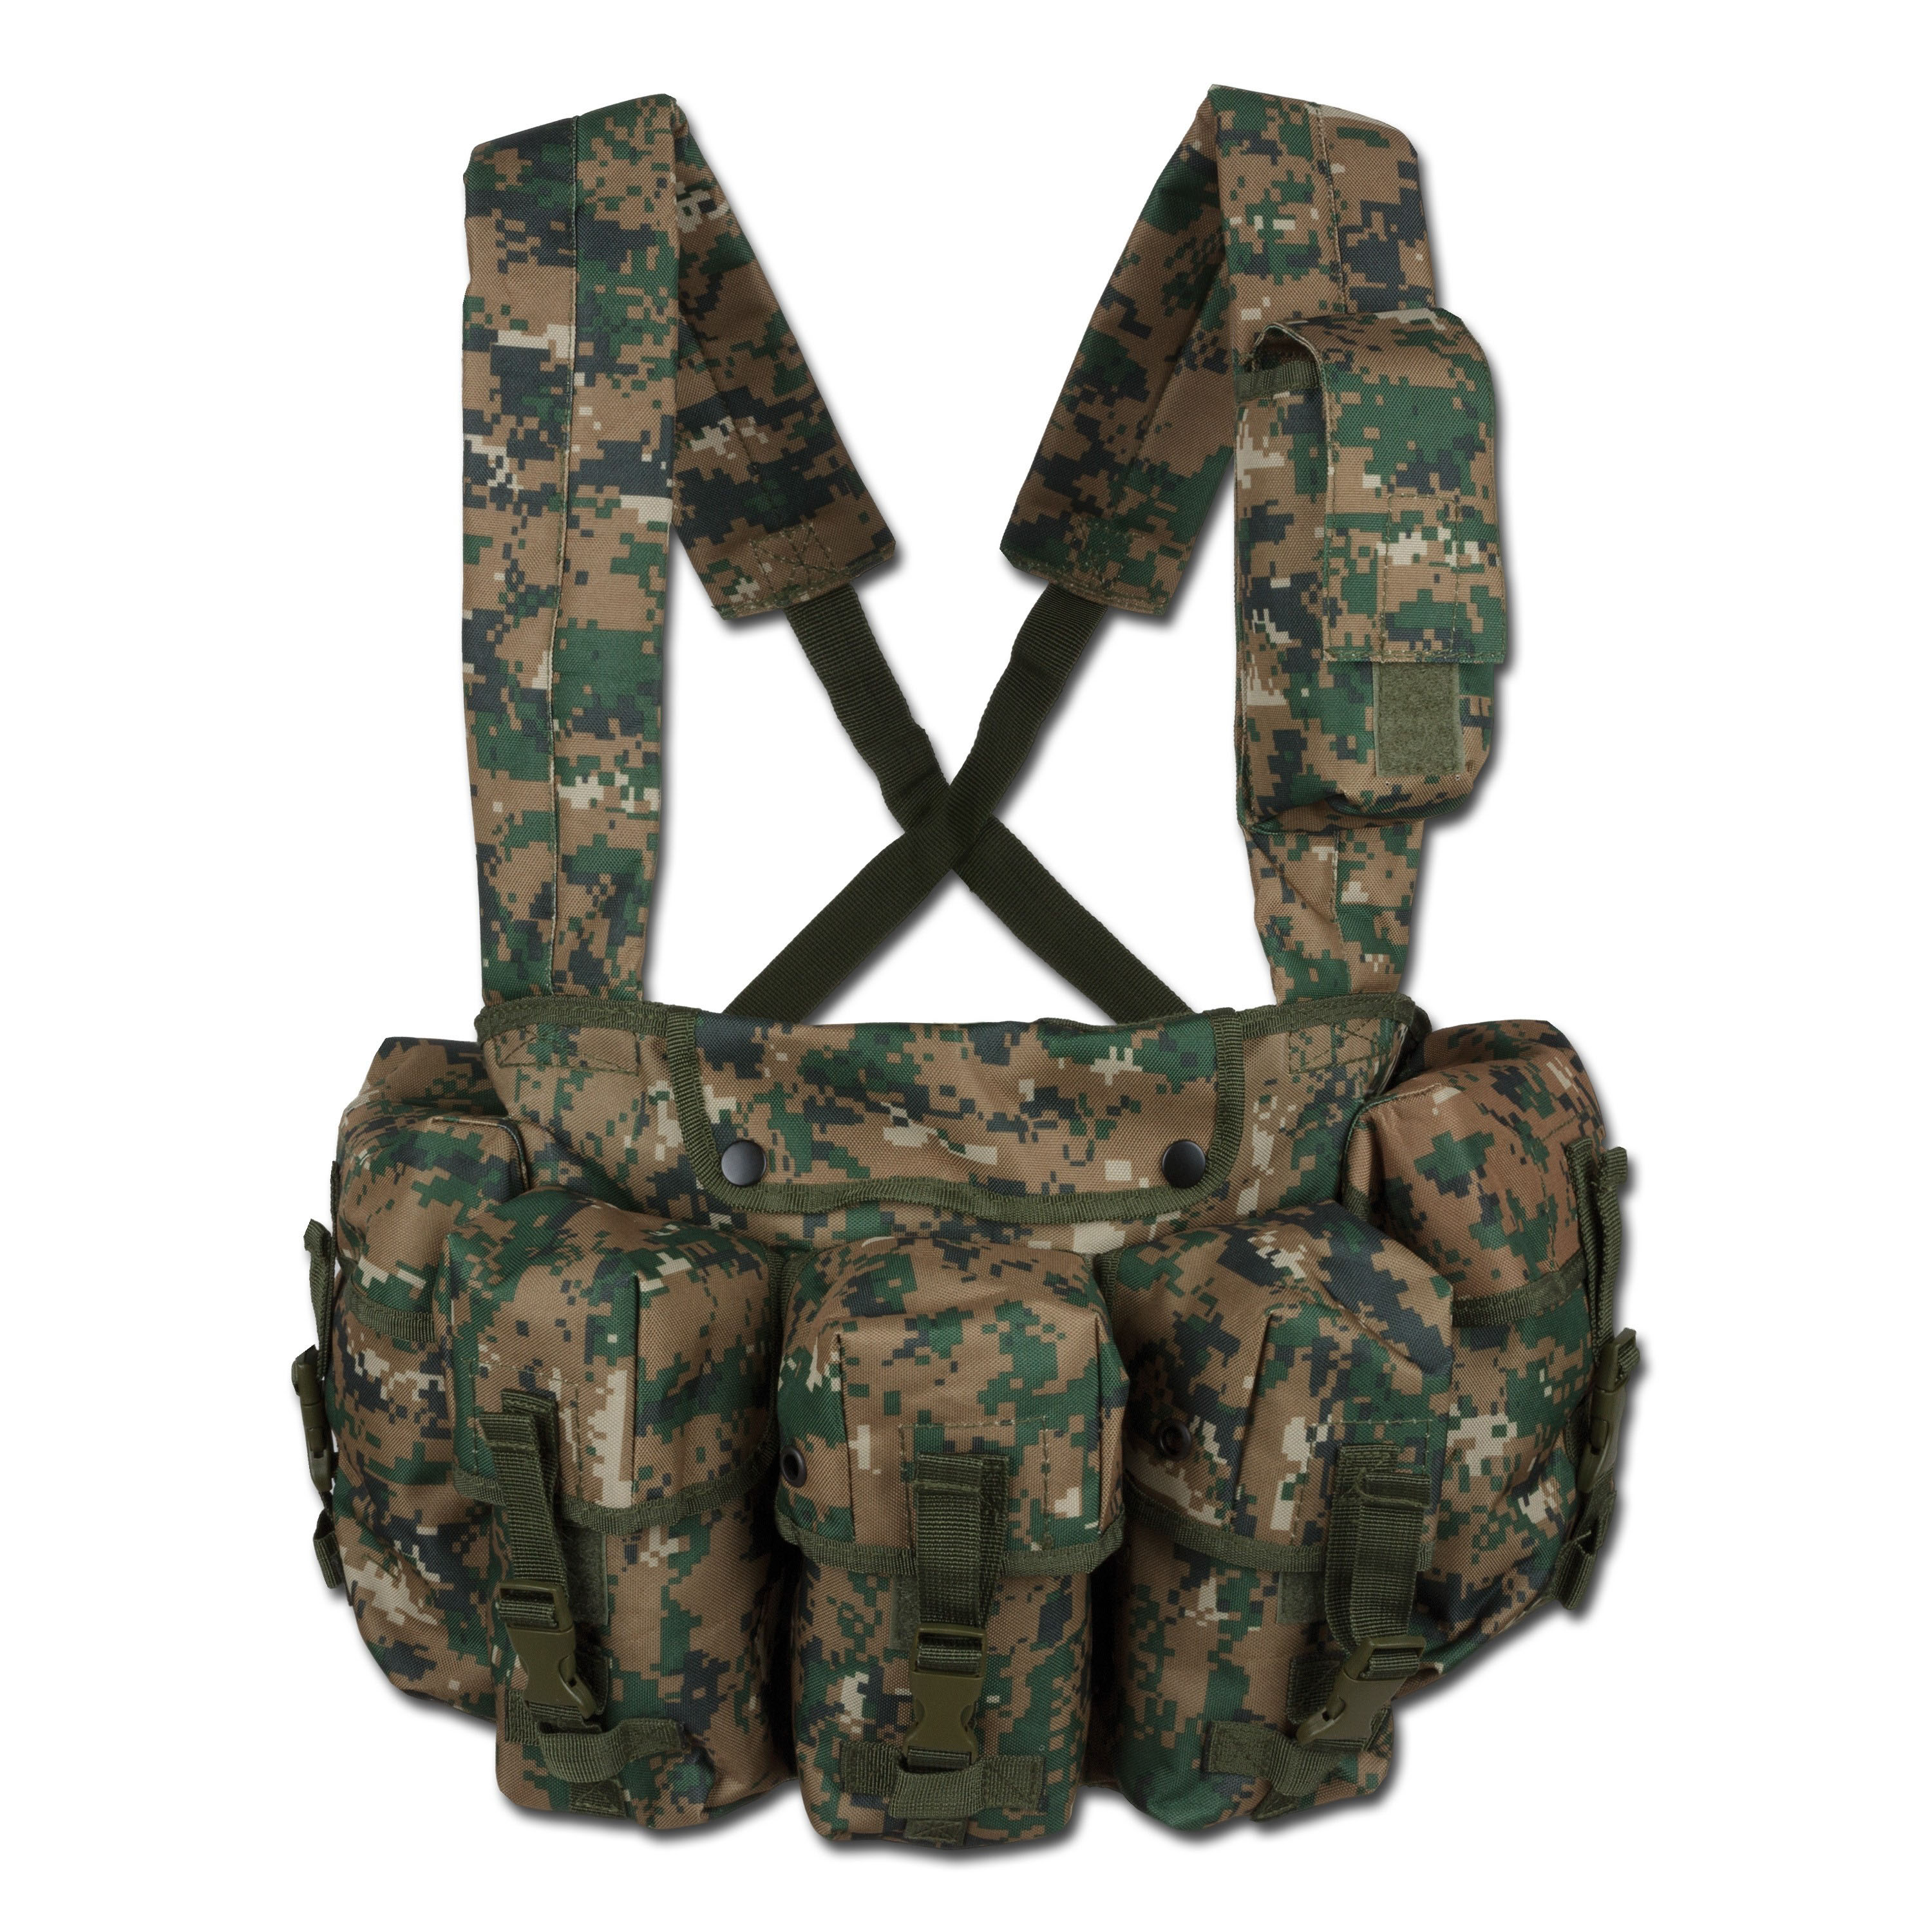 Chest-Rig digicamo woodland